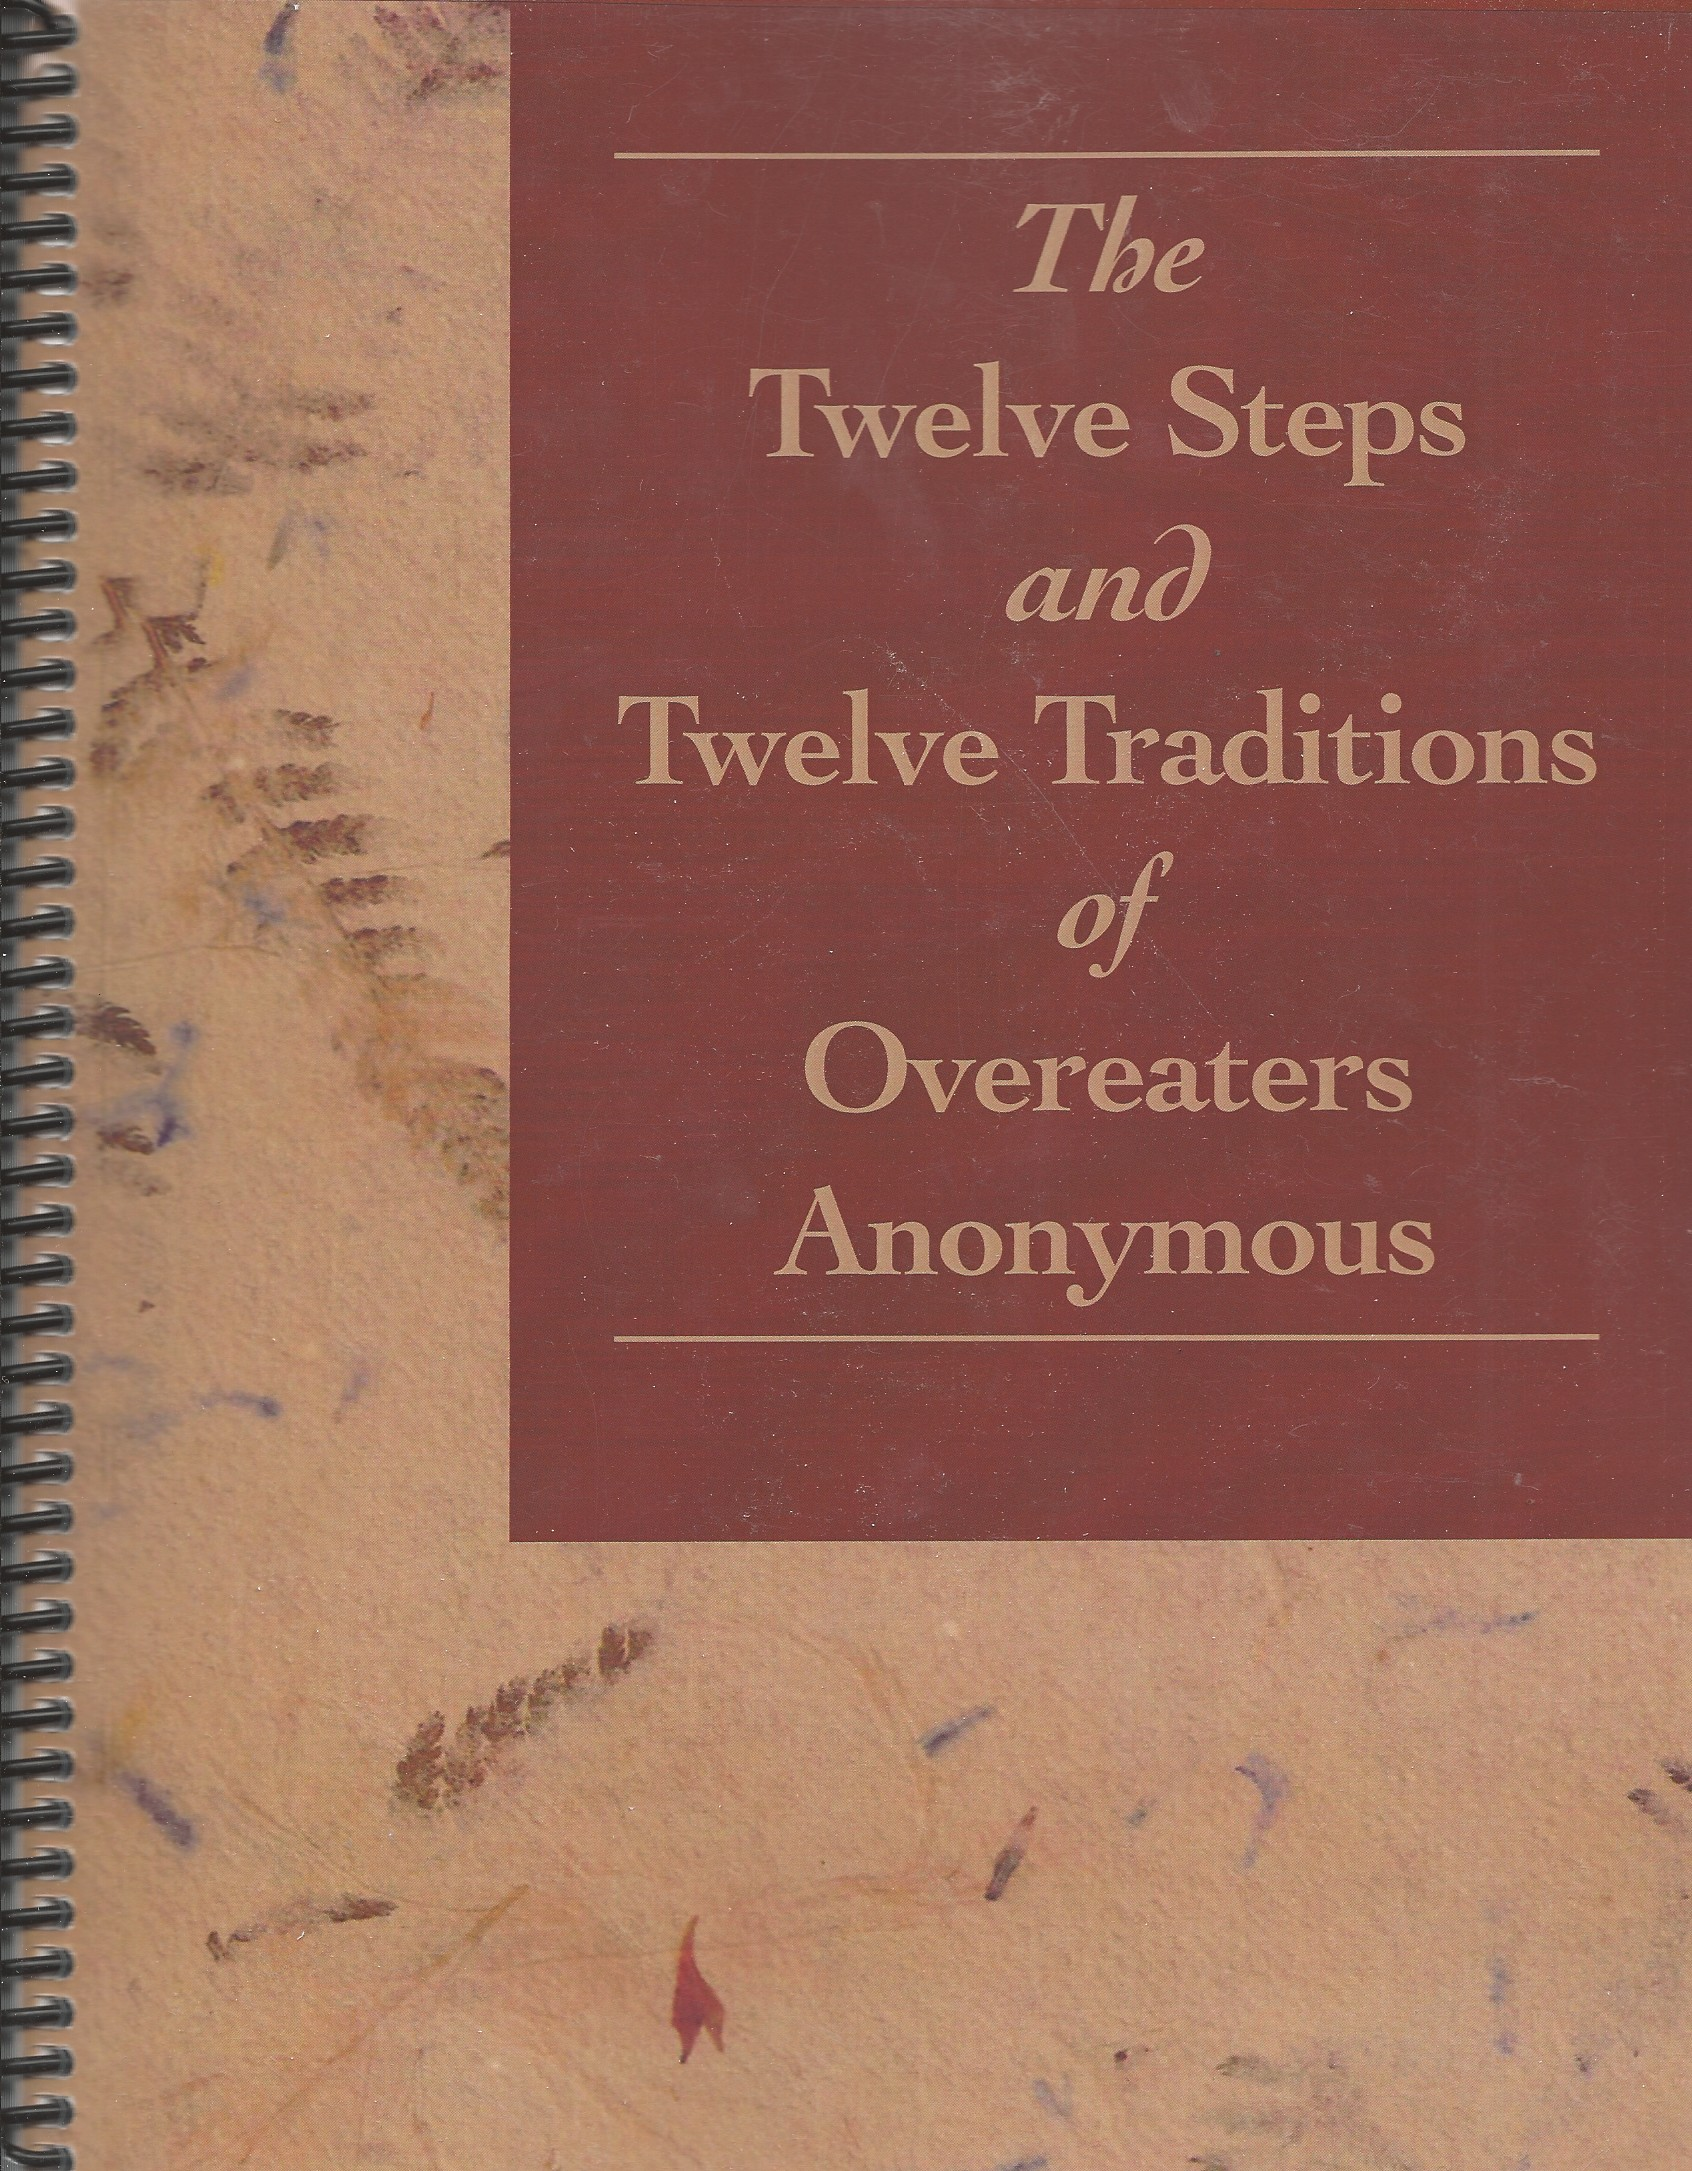 The Twelve Steps Amp Twelve Traditions Of Overeaters